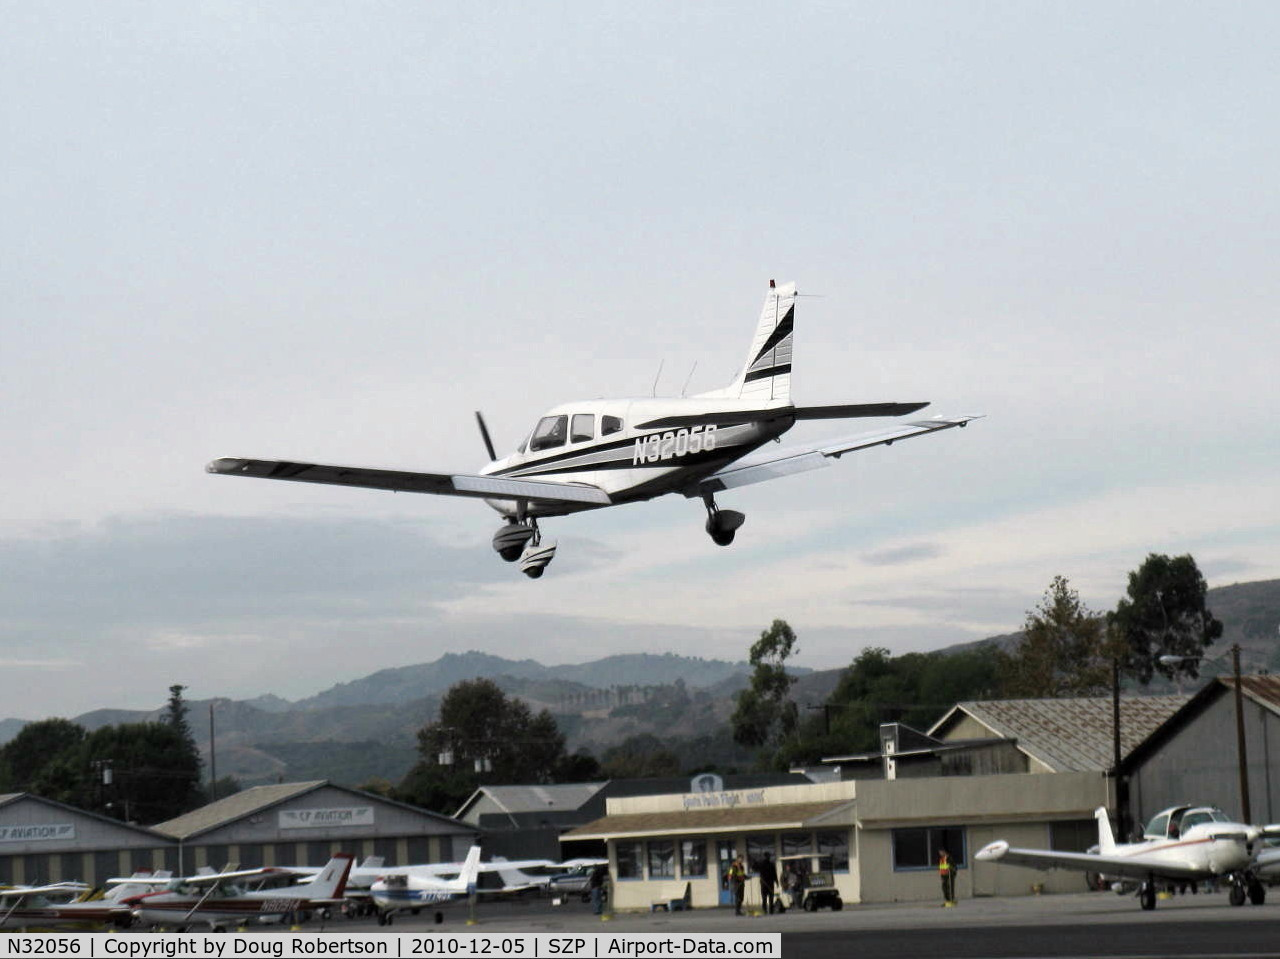 N32056, 1974 Piper PA-28-151 C/N 28-7515056, 1975 Piper PA-28-151 WARRIOR, Lycoming O-320-E2D 150 Hp, high fast long go-around over 22